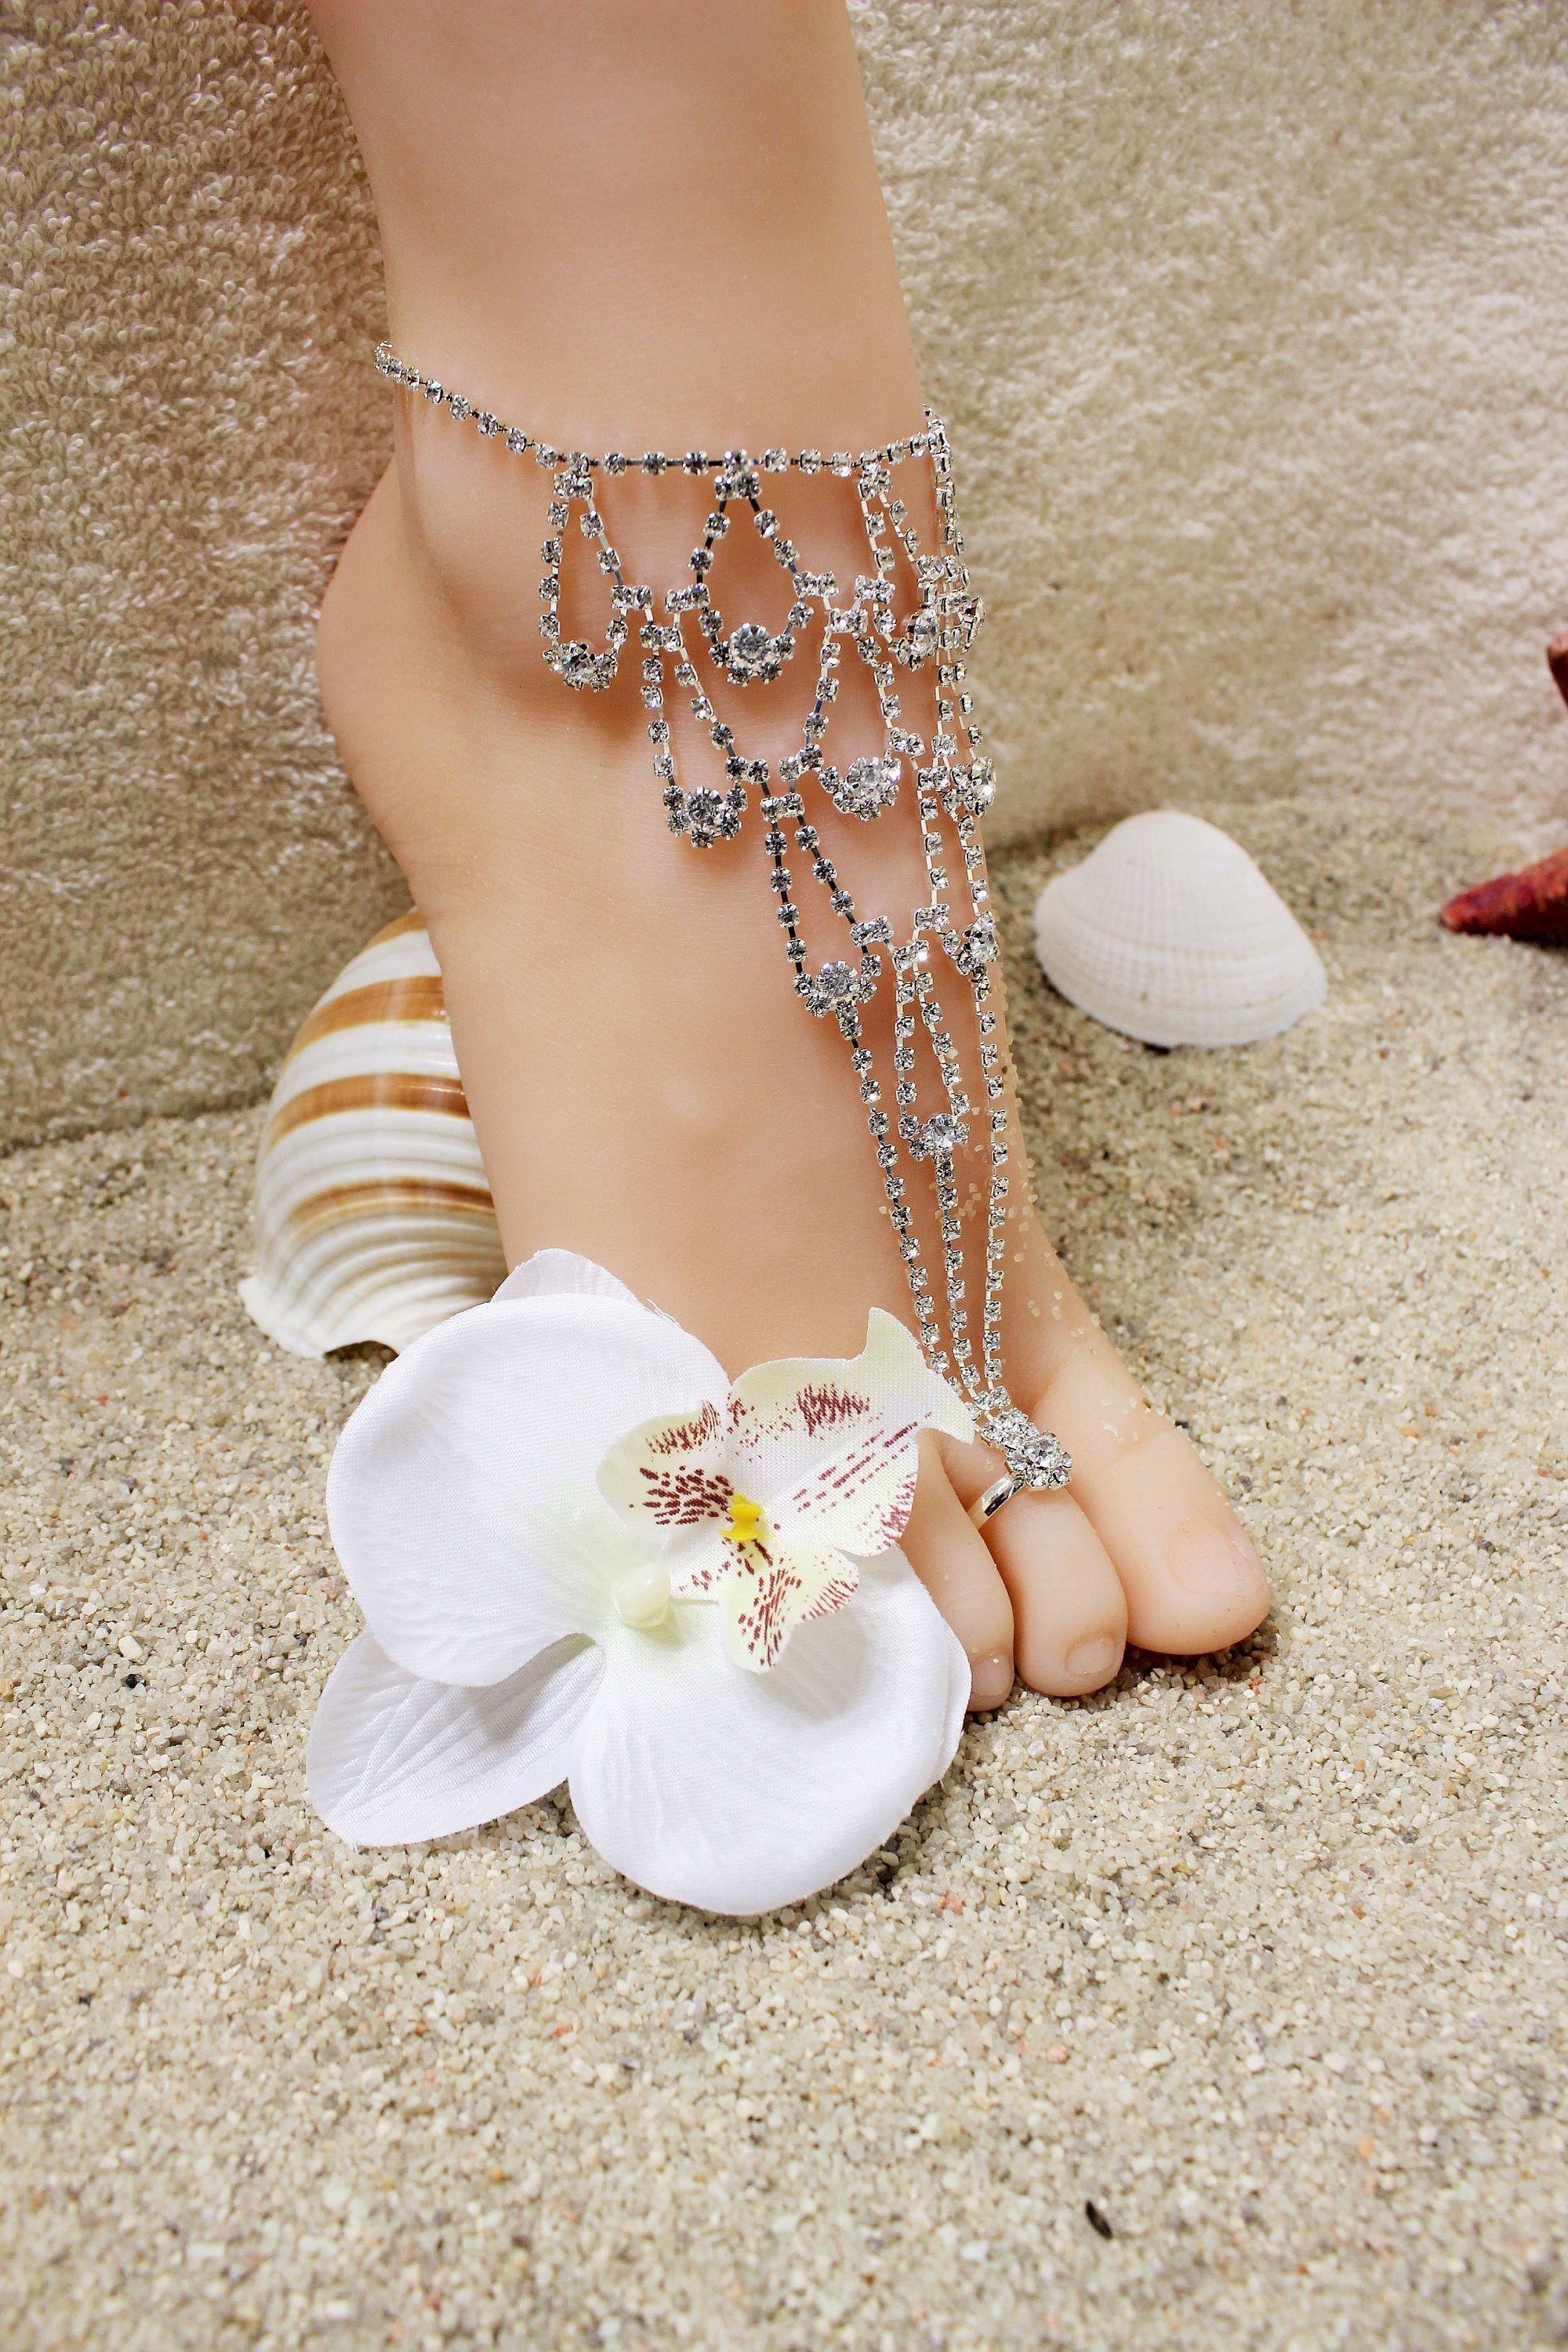 Crystal Rhinestone Barefoot Sandal Bridal Foot Jewelry Bridesmaid